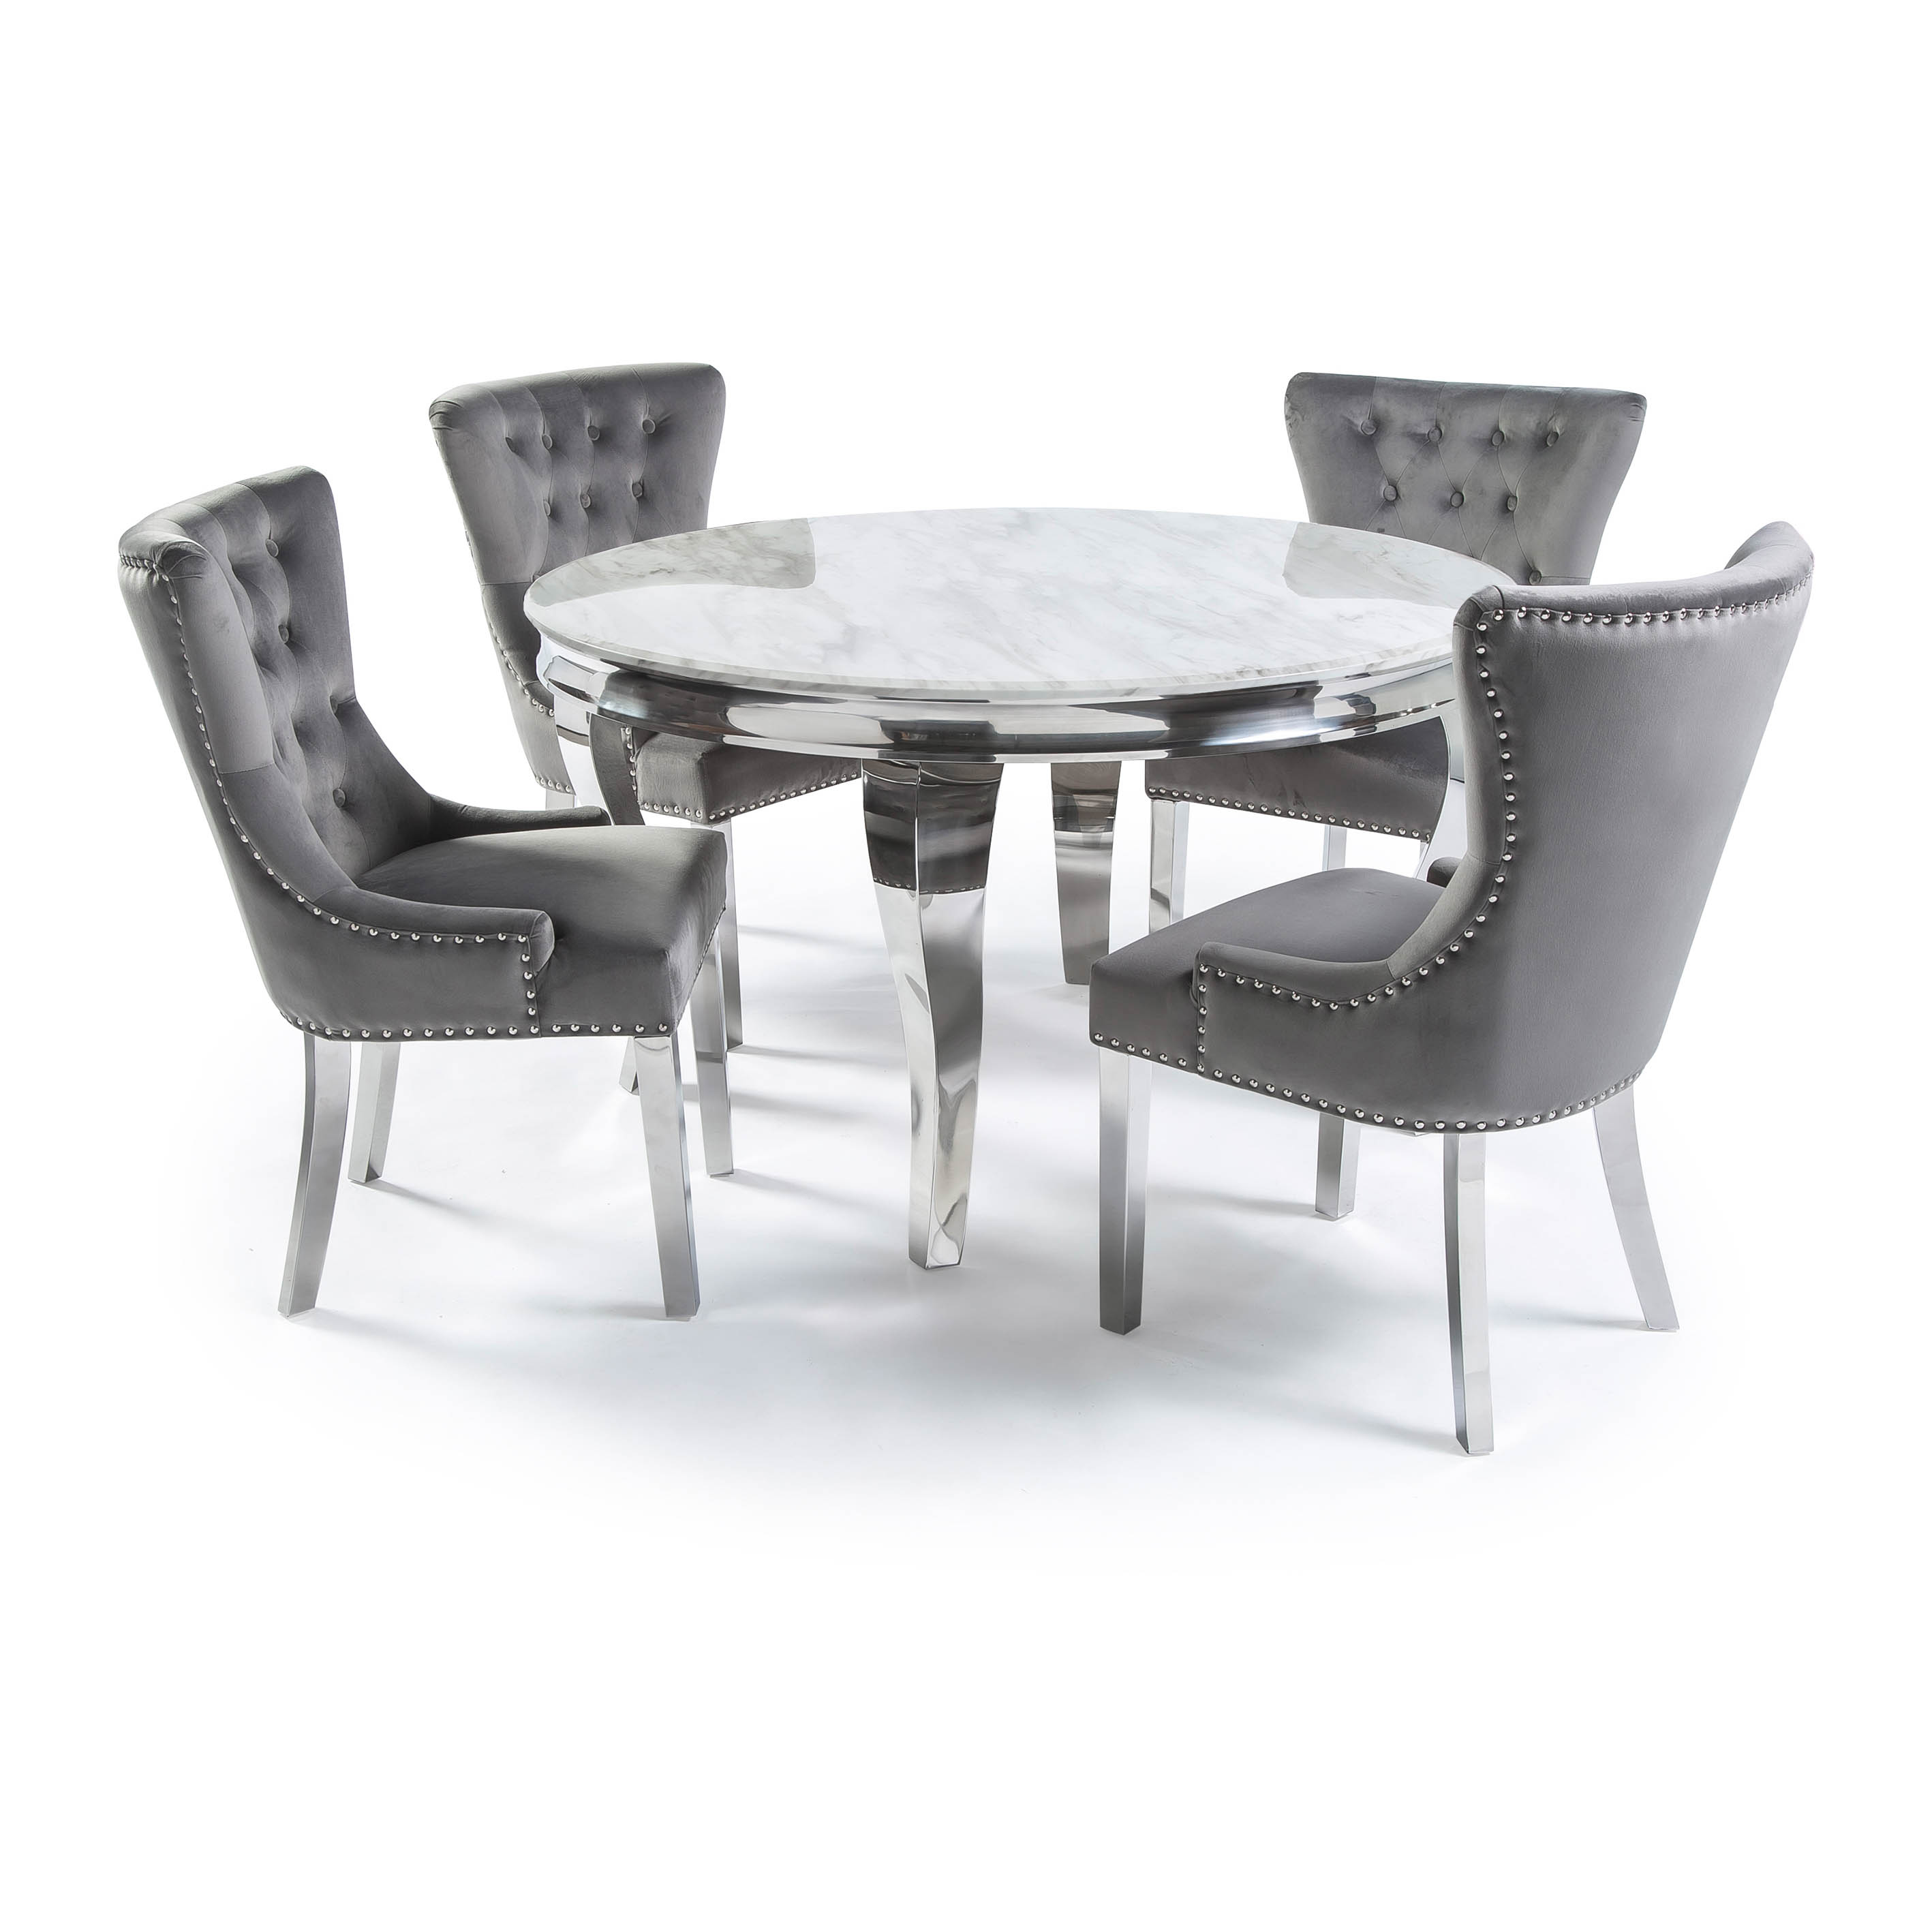 1.3m Circular Louis Polished Steel Dining White Marble Table Set with 4 Knightsbridge Grey Brushed Velvet Dining Chair – Plain